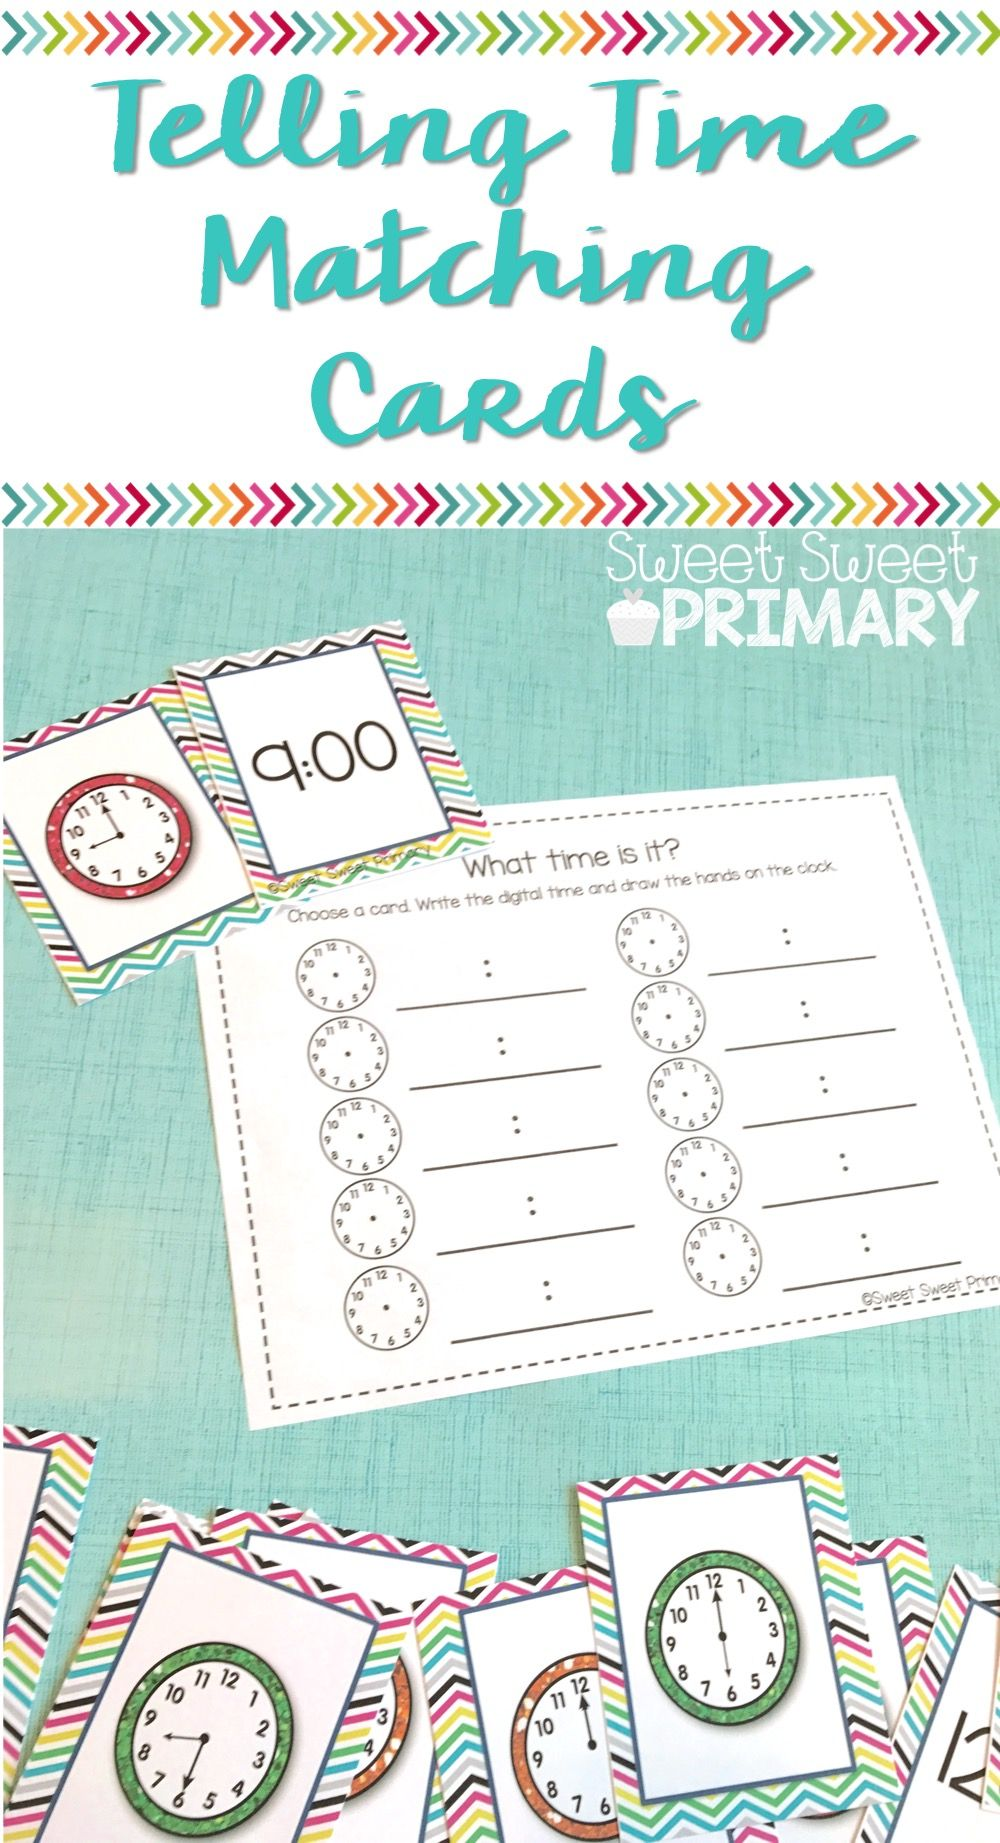 Telling Time Matching Cards | Pre-school, Maths and Activities